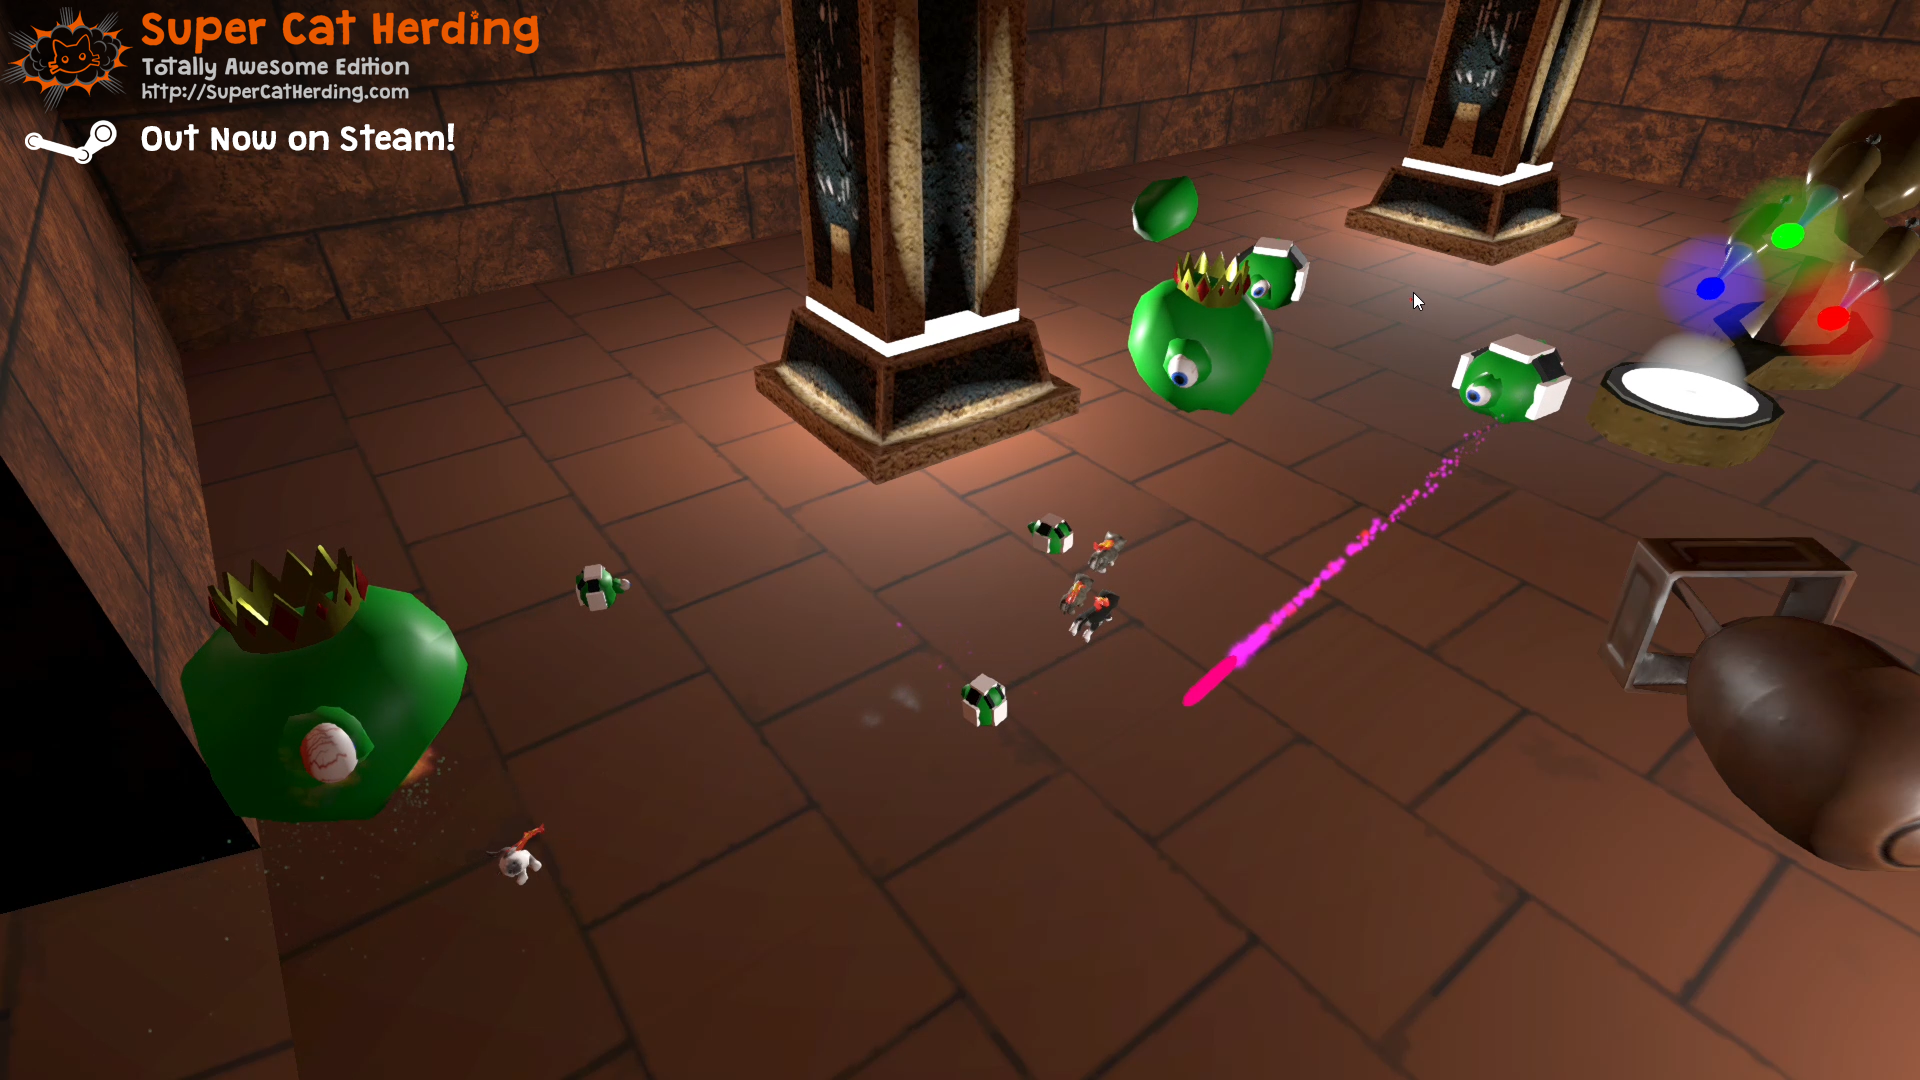 Fighting Goo Enemies in the New Cydonia Level - Super Cat Herding: Totally Awesome Edition